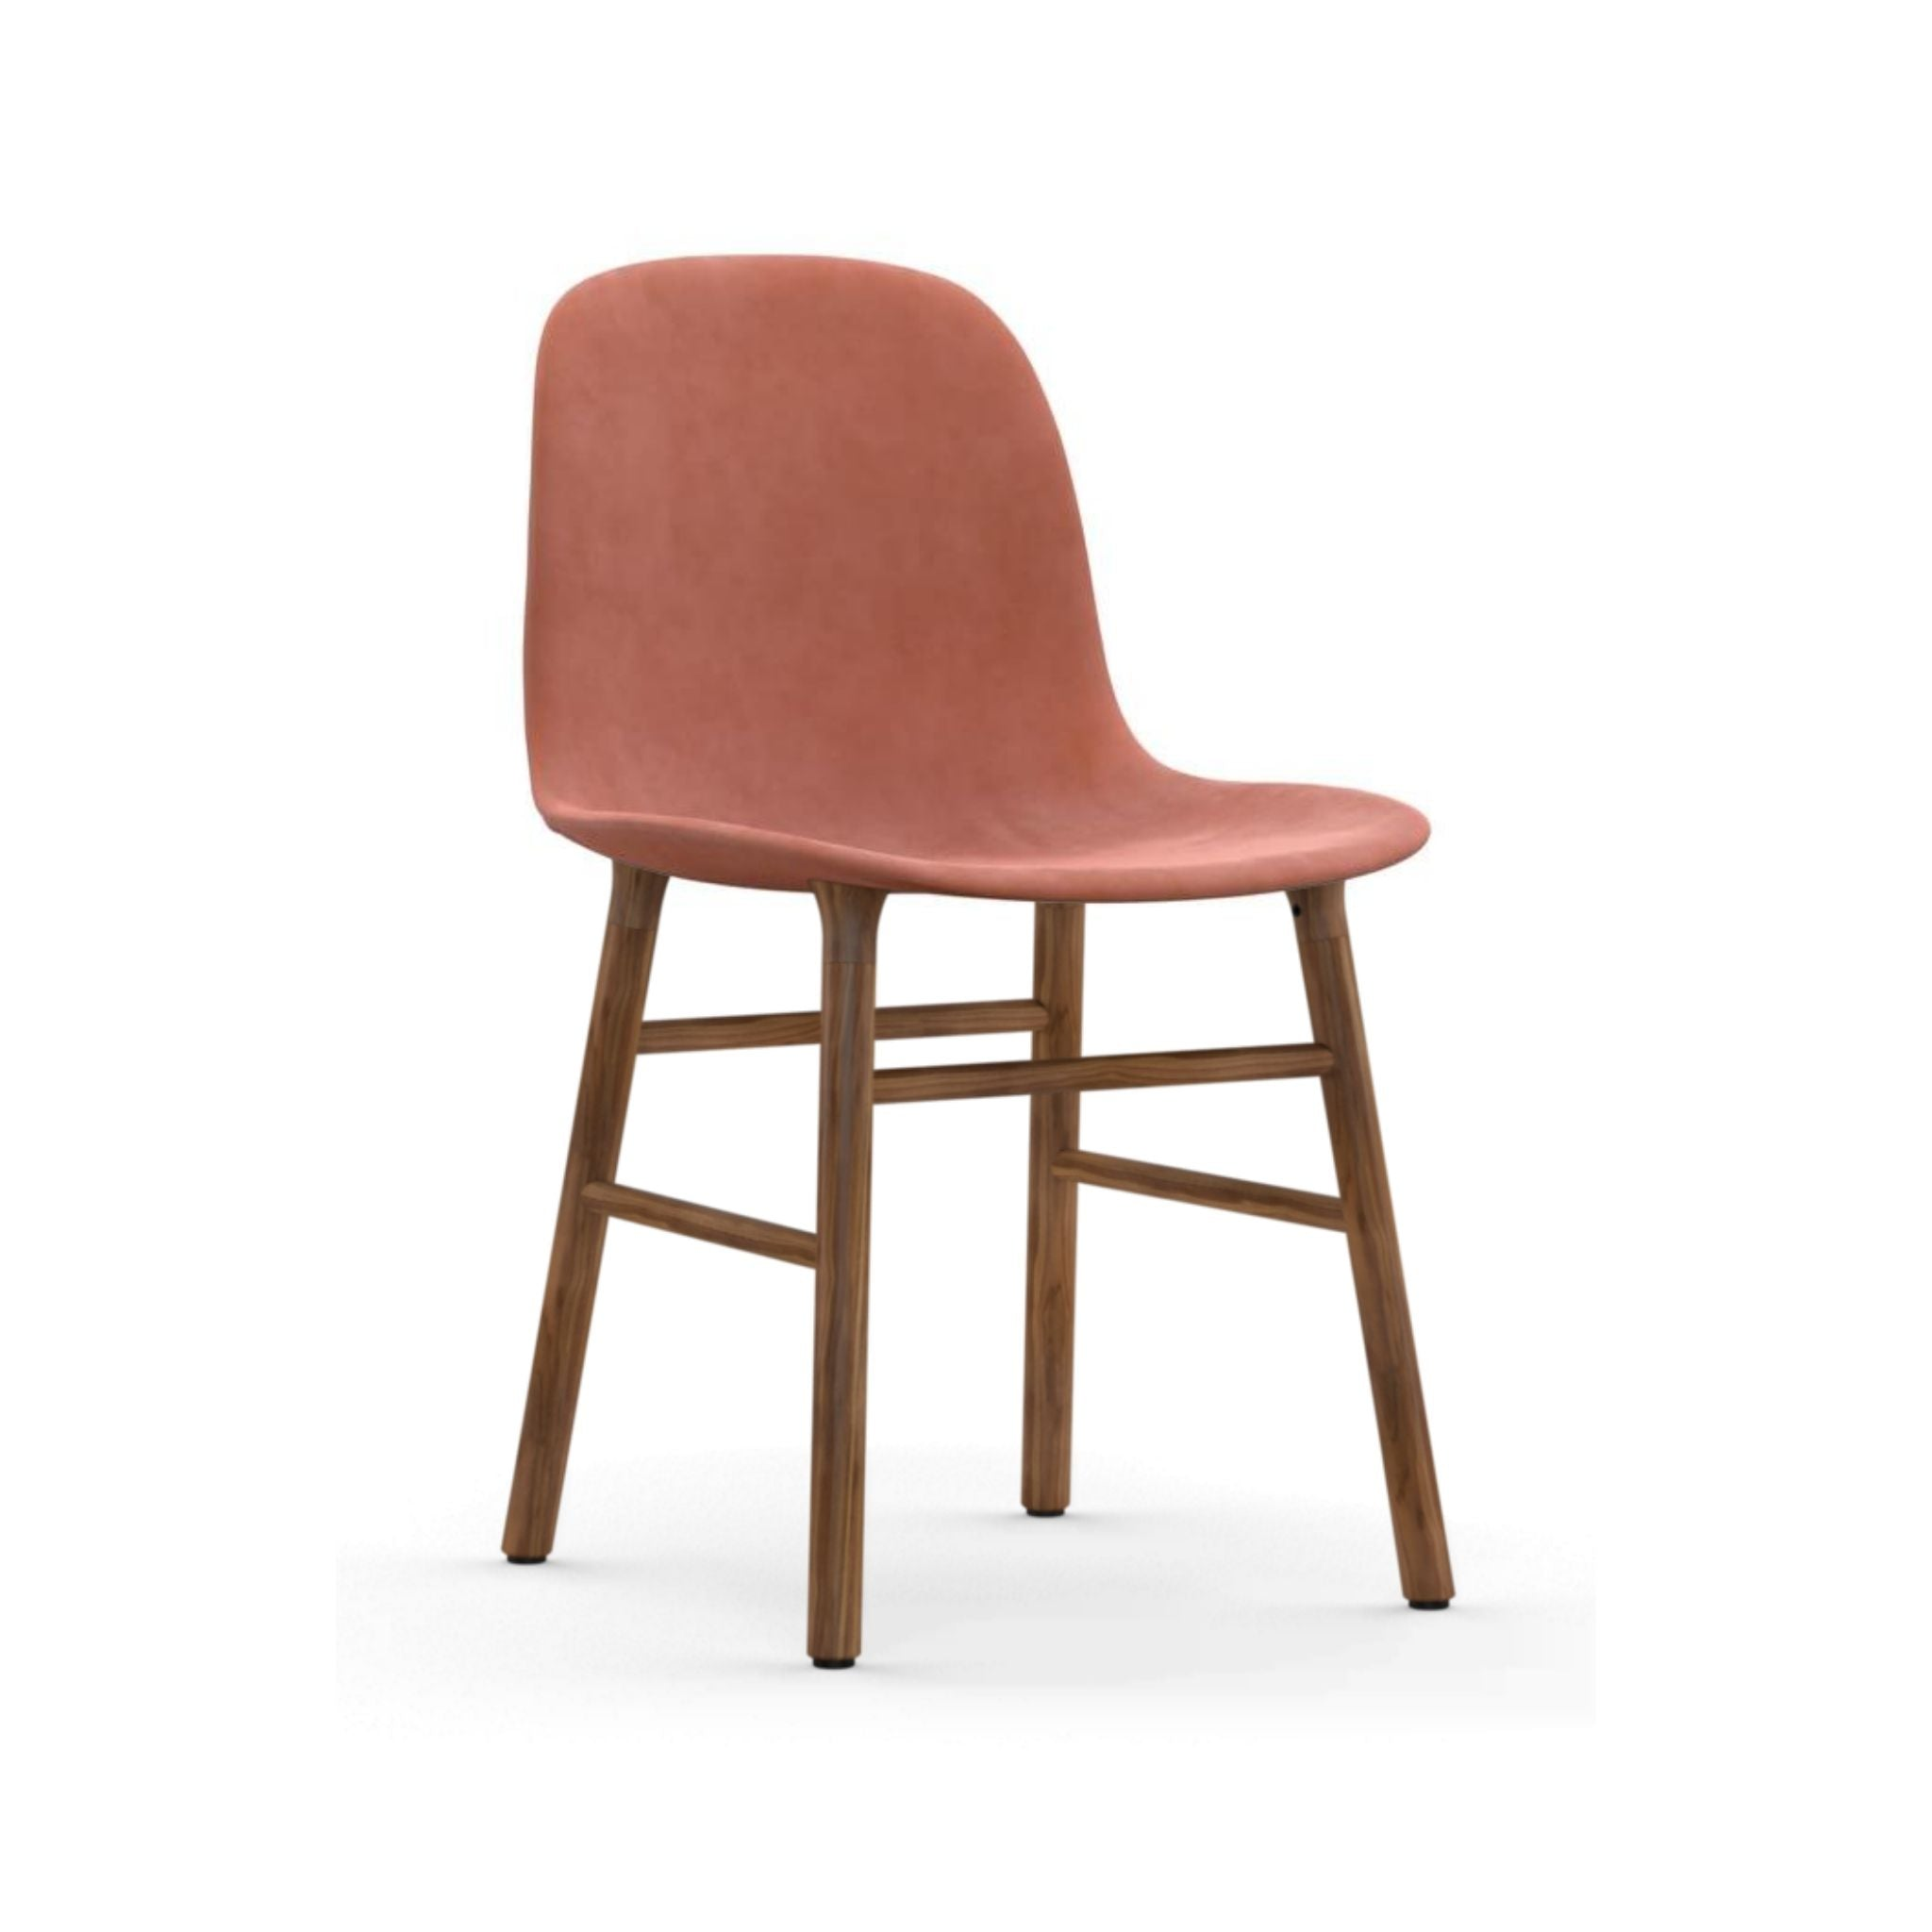 Form Chair Full Upholstery Wood